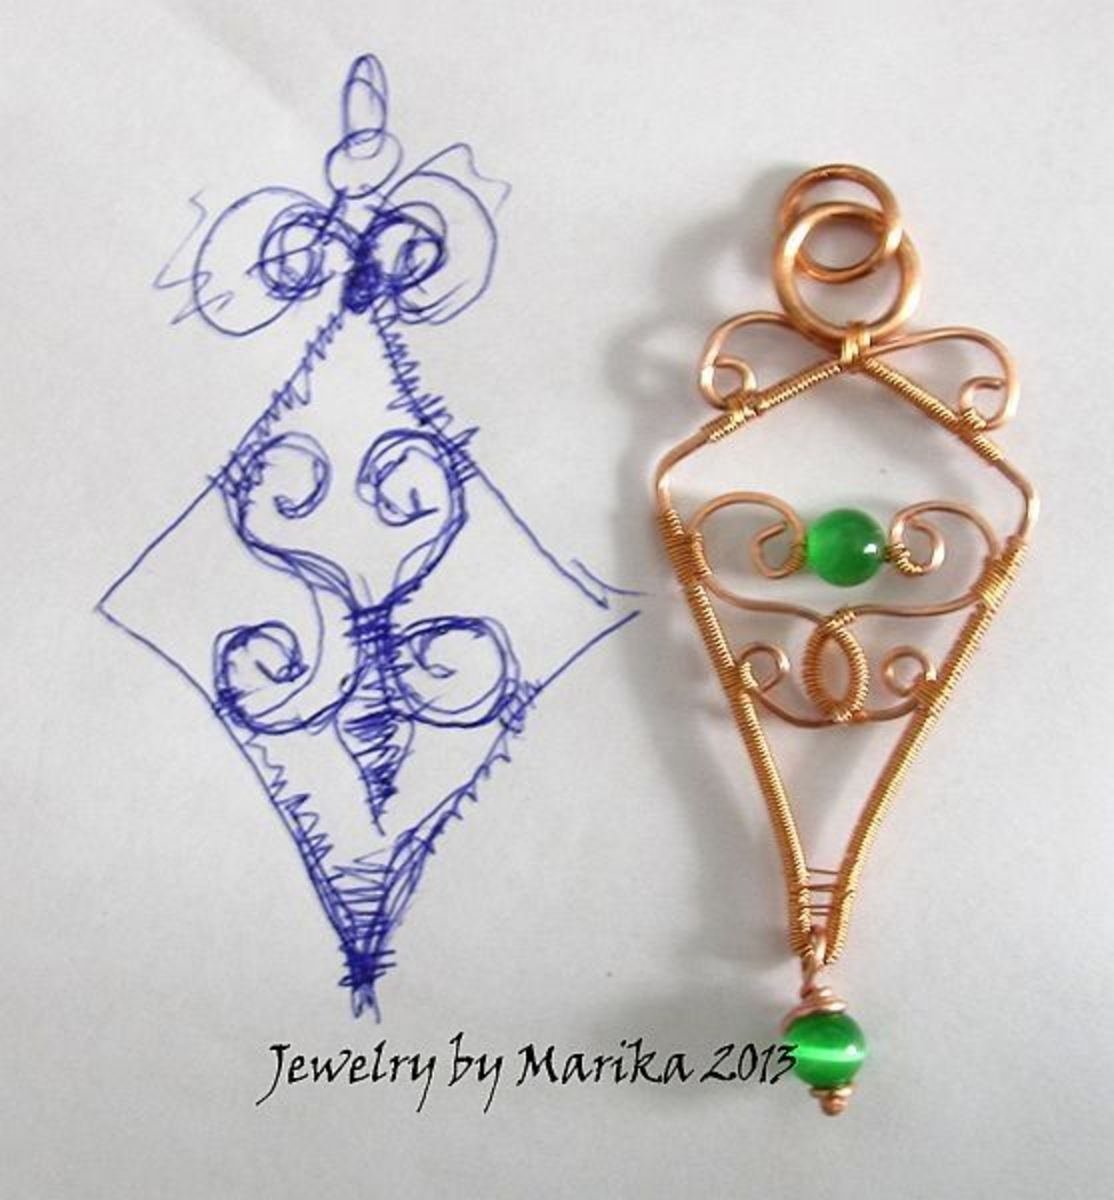 comparing jewelry to original design